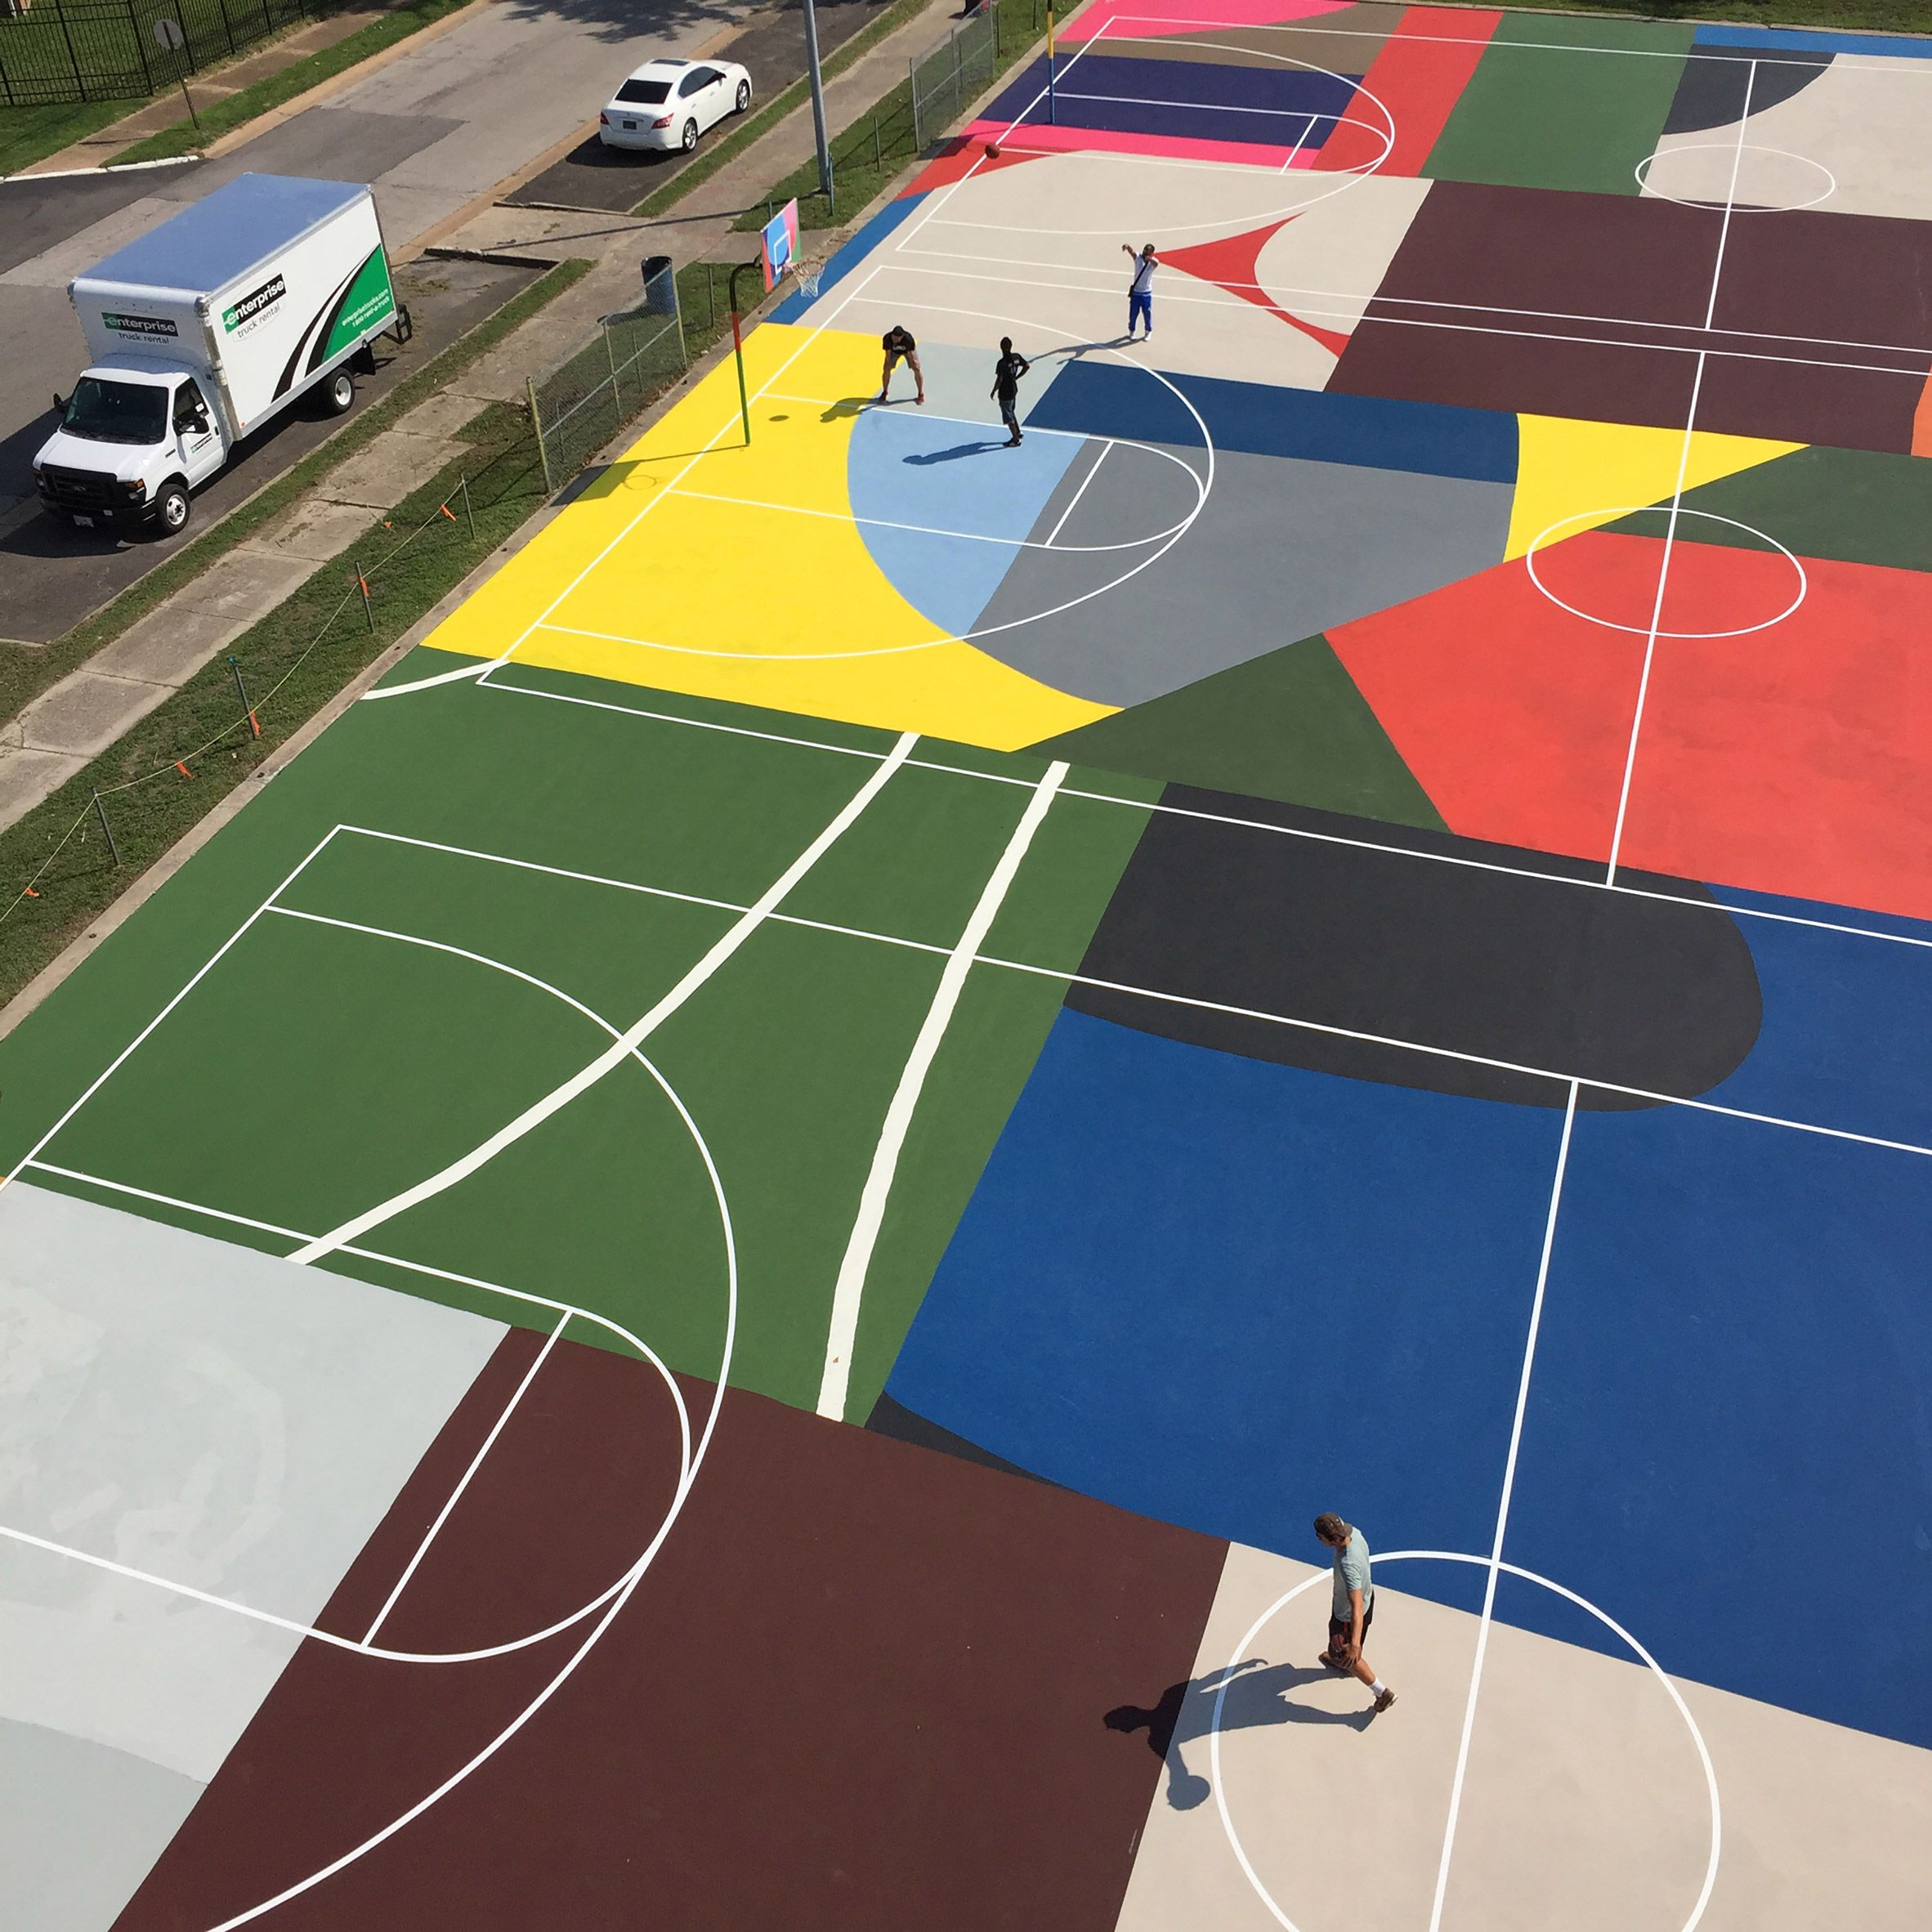 William Lachance Spruces Up St Louis Basketball Courts With Tapestry Of Colour Urban Landscape Outdoor Basketball Court Basketball Court